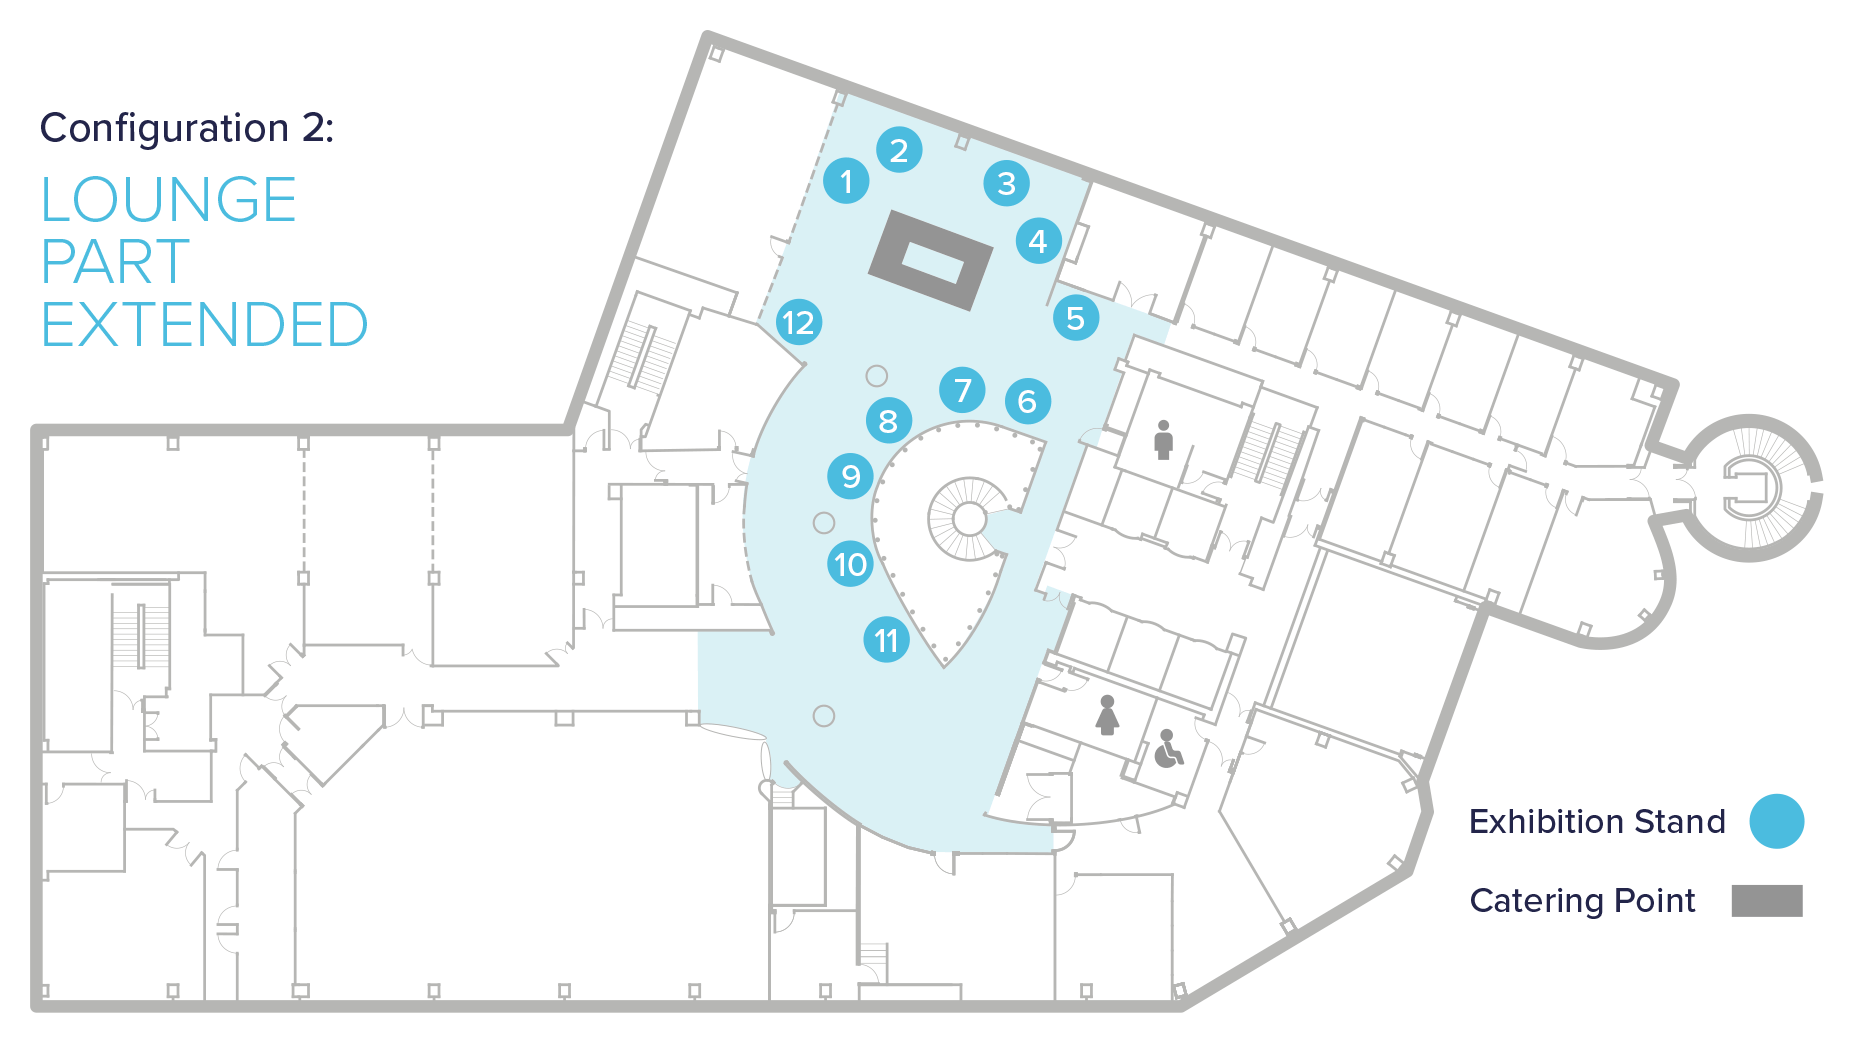 exhibition floor plans at conference